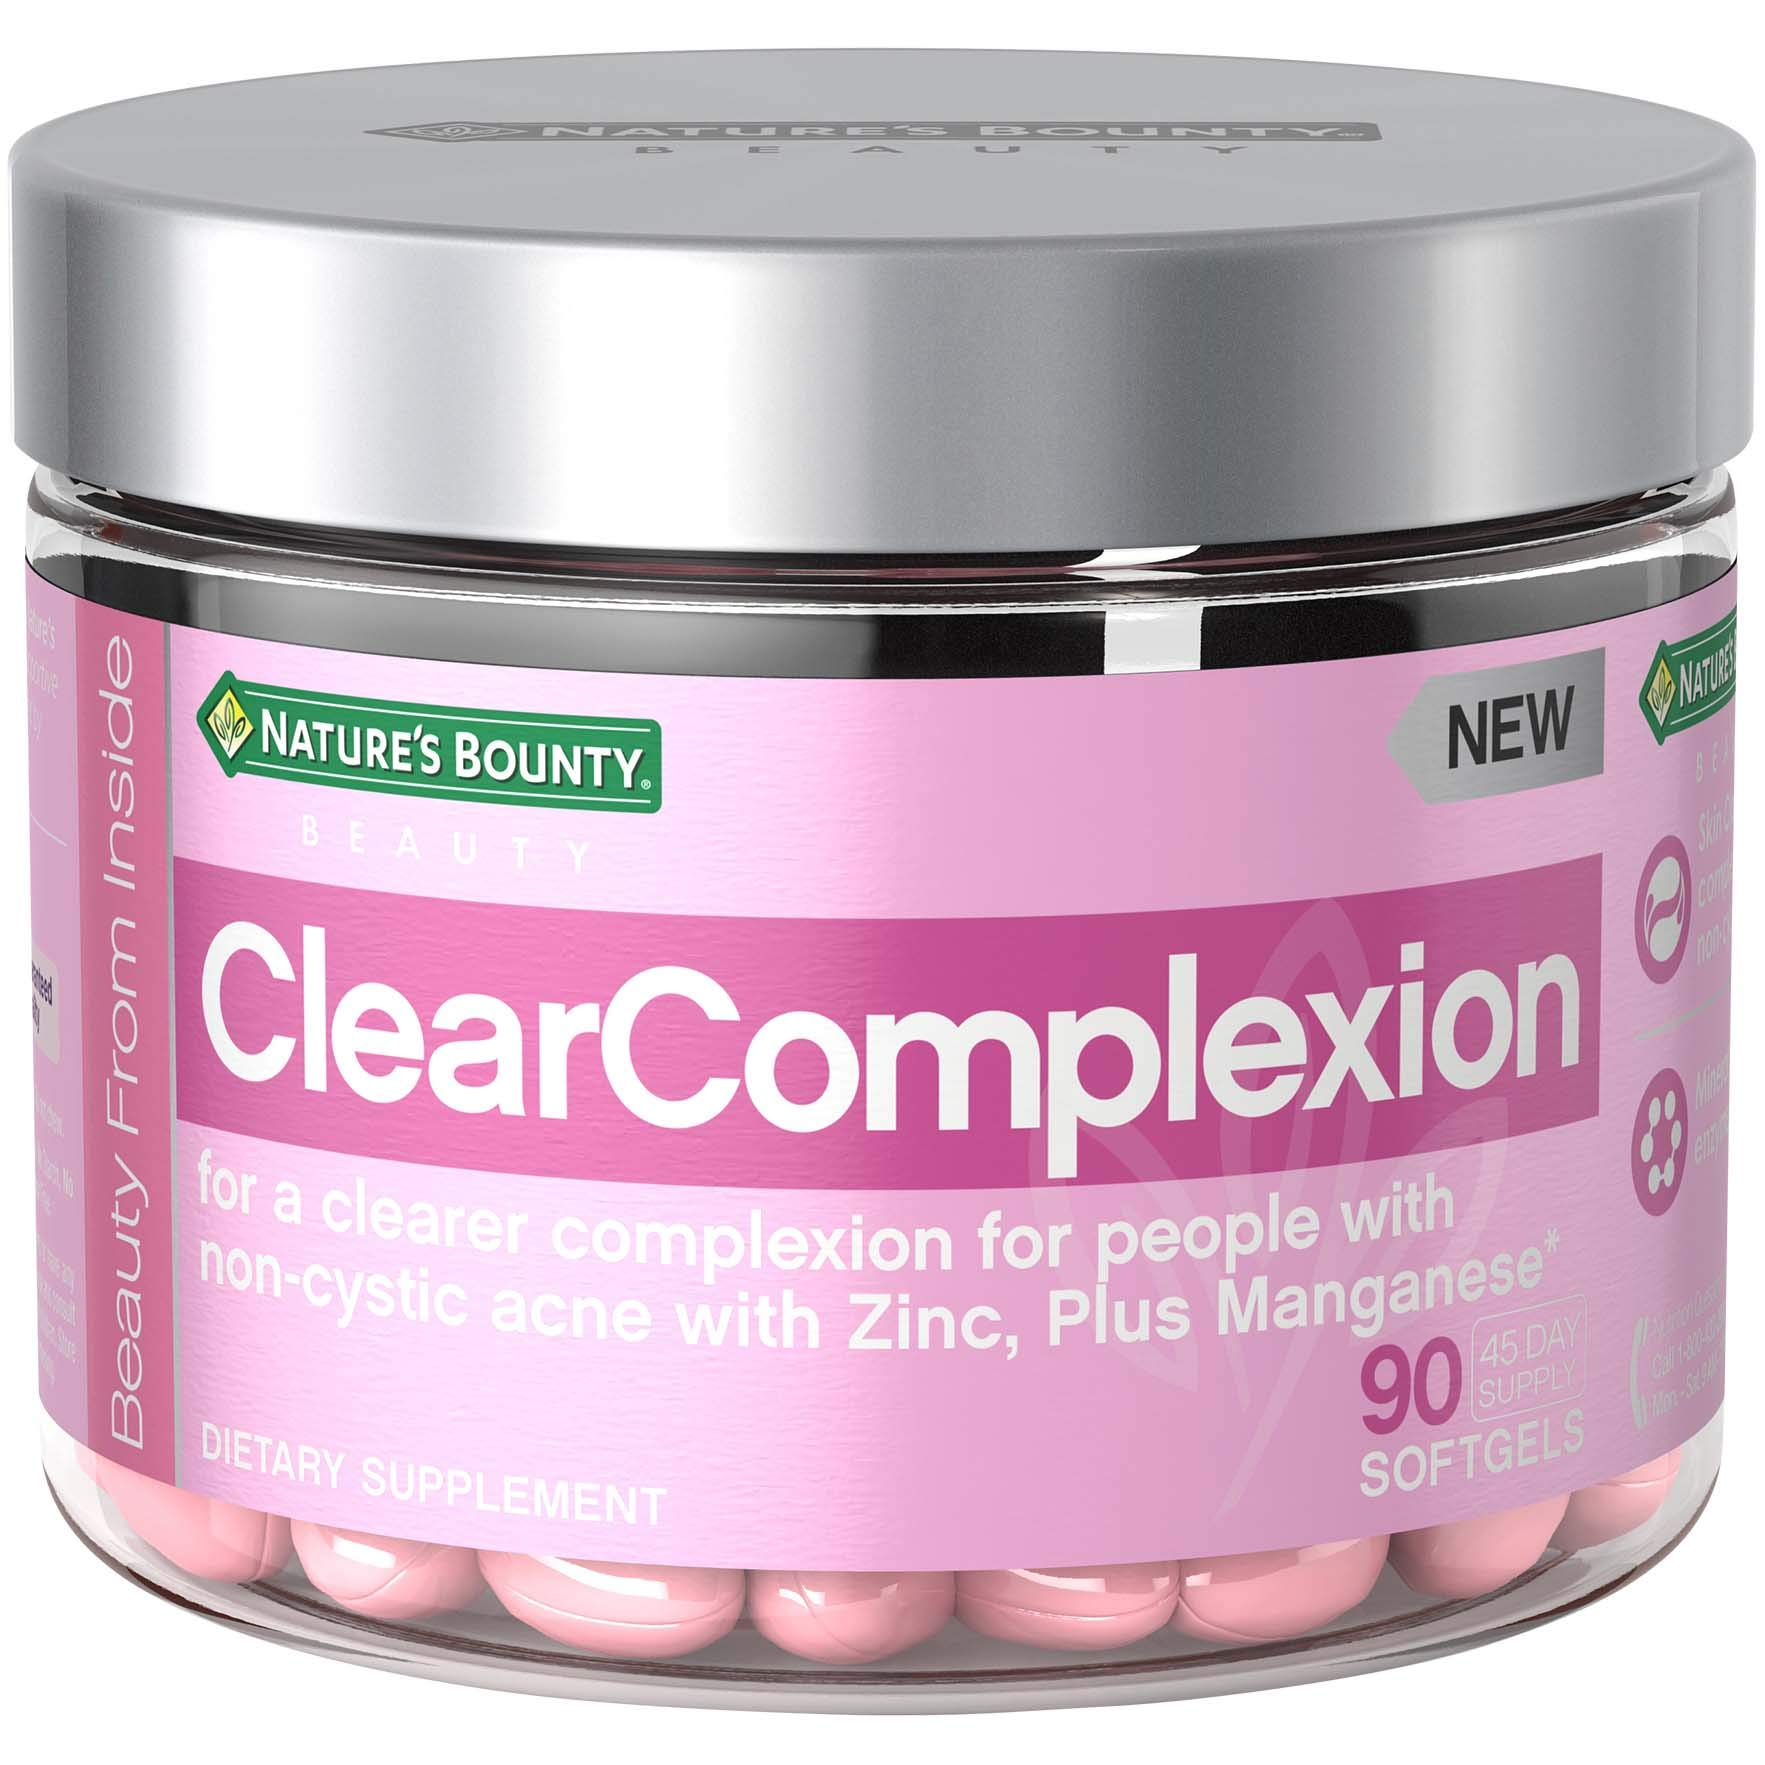 Beauty by Nature's Bounty, Dietary Supplement for Clear Complexion, with Zinc for Immune Support Plus Manganese*, for People with Non-Cystic Acne*, 90 Softgels